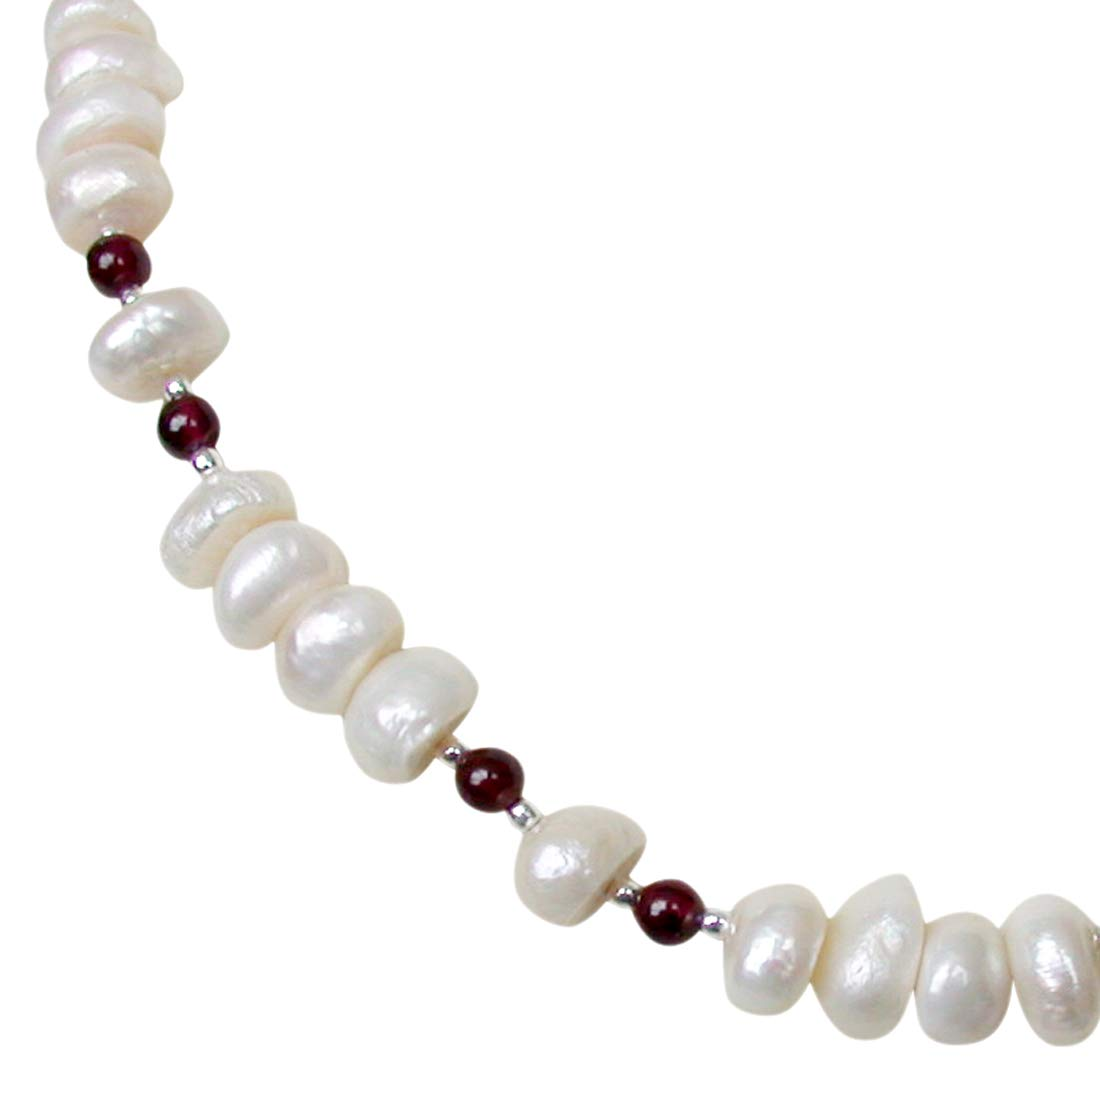 Bounty - Single Line Real Freshwater Pearl, Red Garnet & Silver Plated Beads Necklace for Women (SN215)